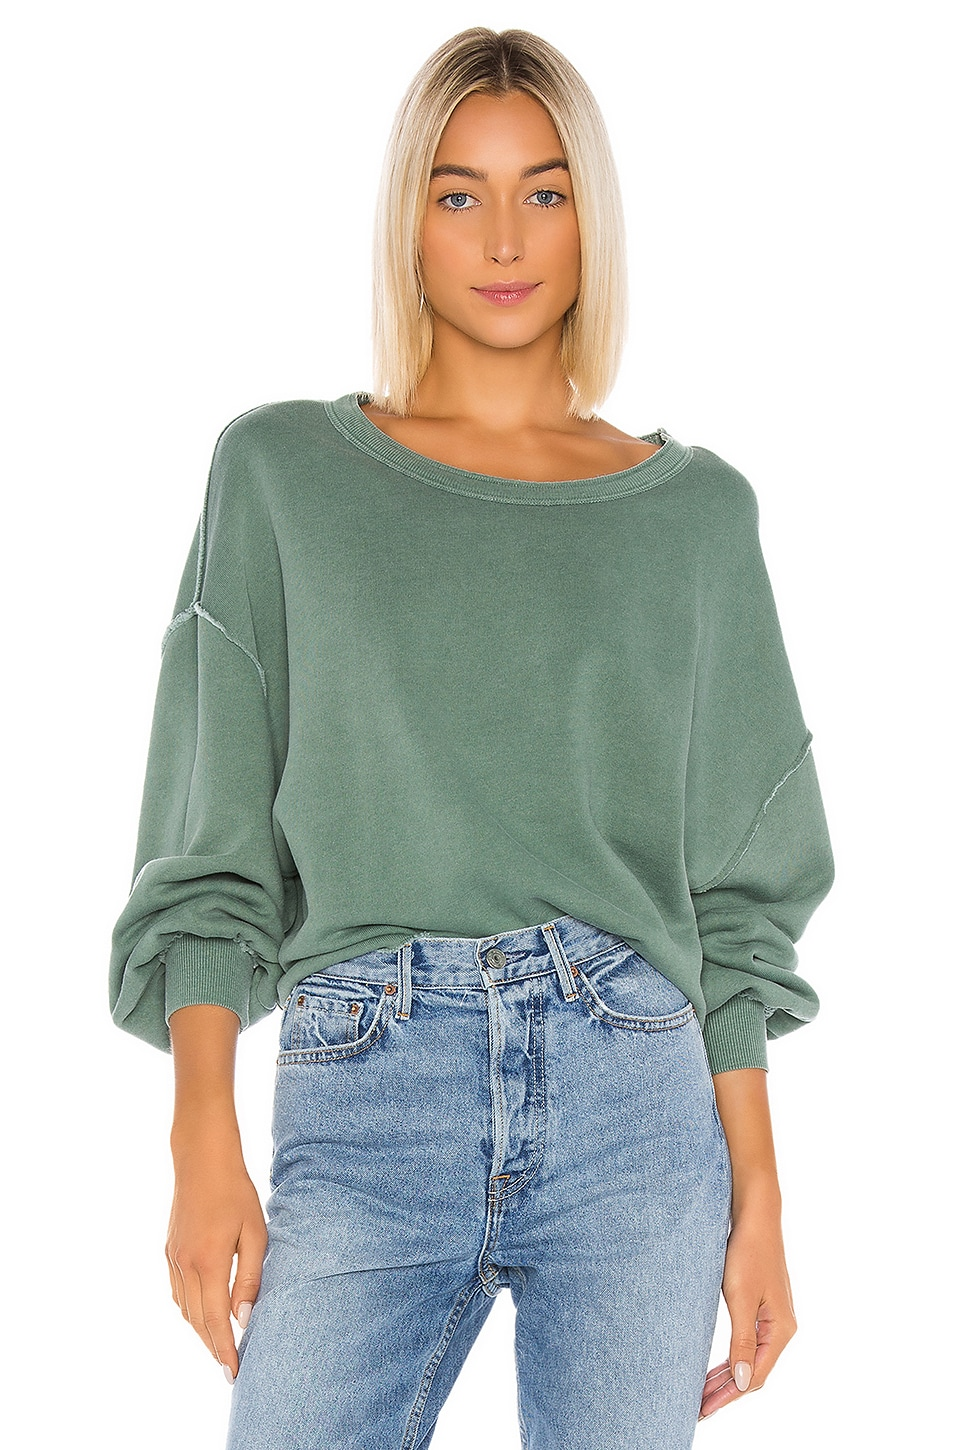 Wildfox Couture Olivia Sweatshirt in Pigment Cadet